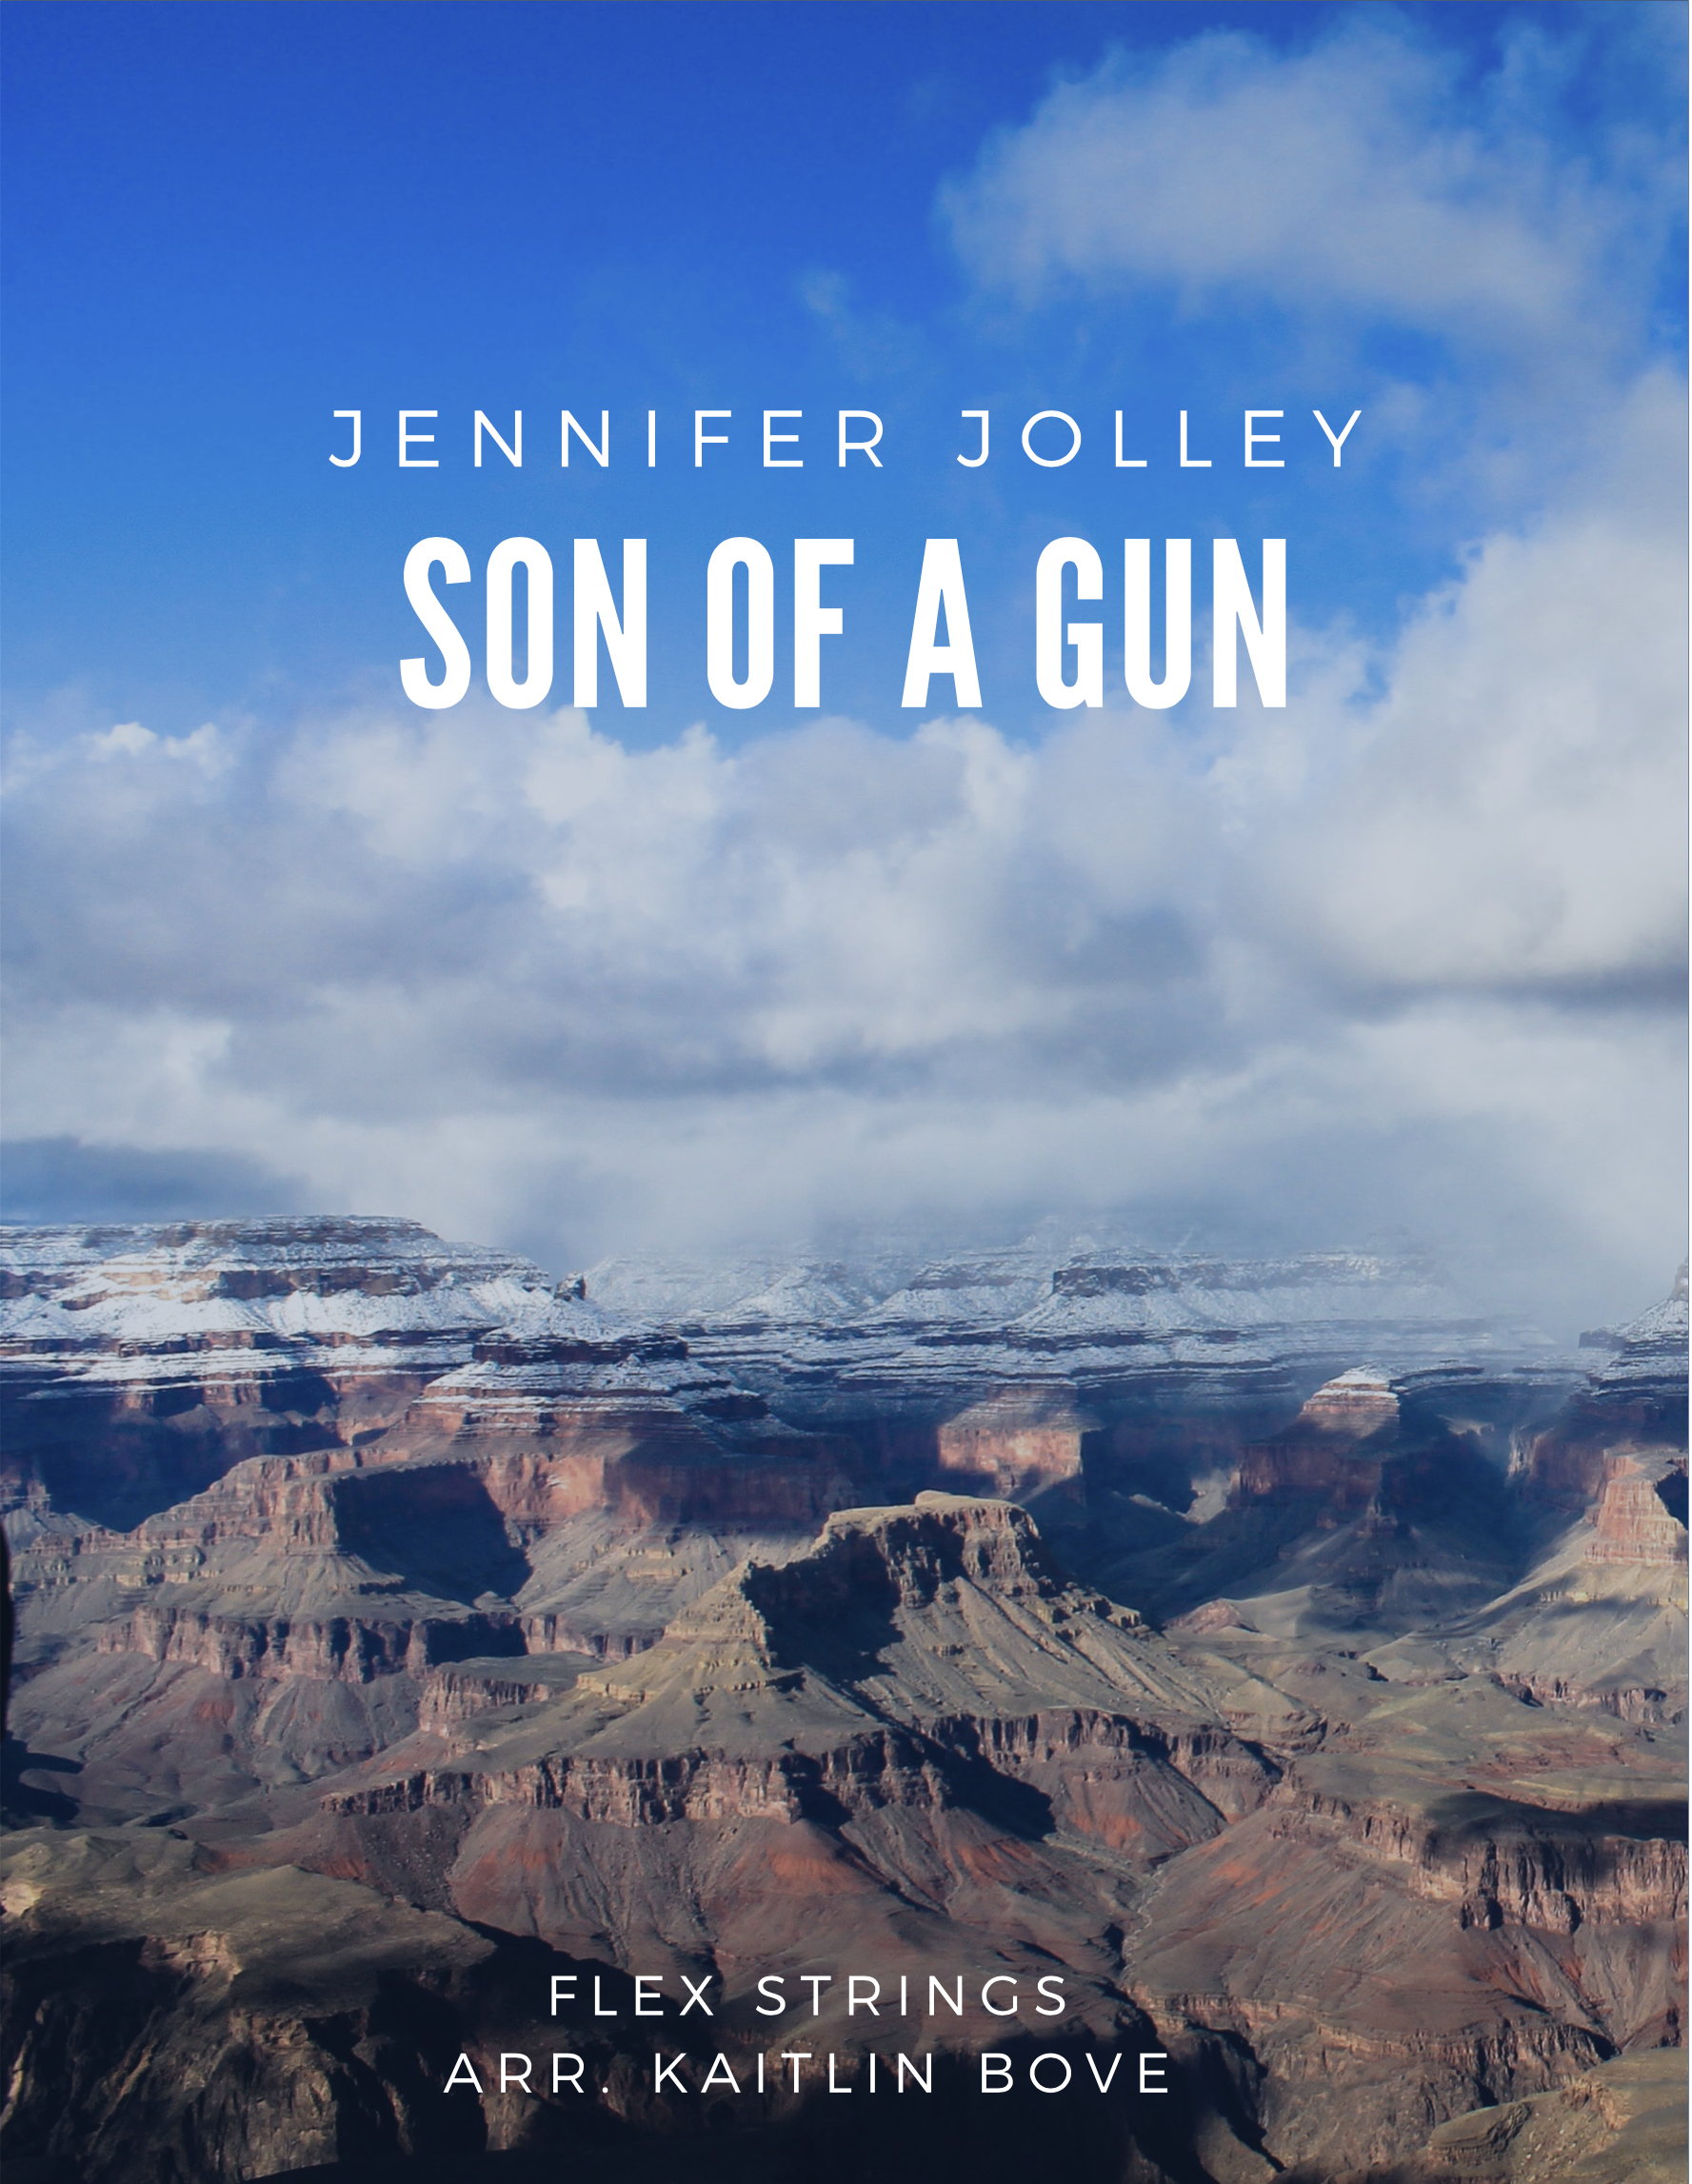 Son Of A Gun (Flex Strings Version) by Jennifer Jolley